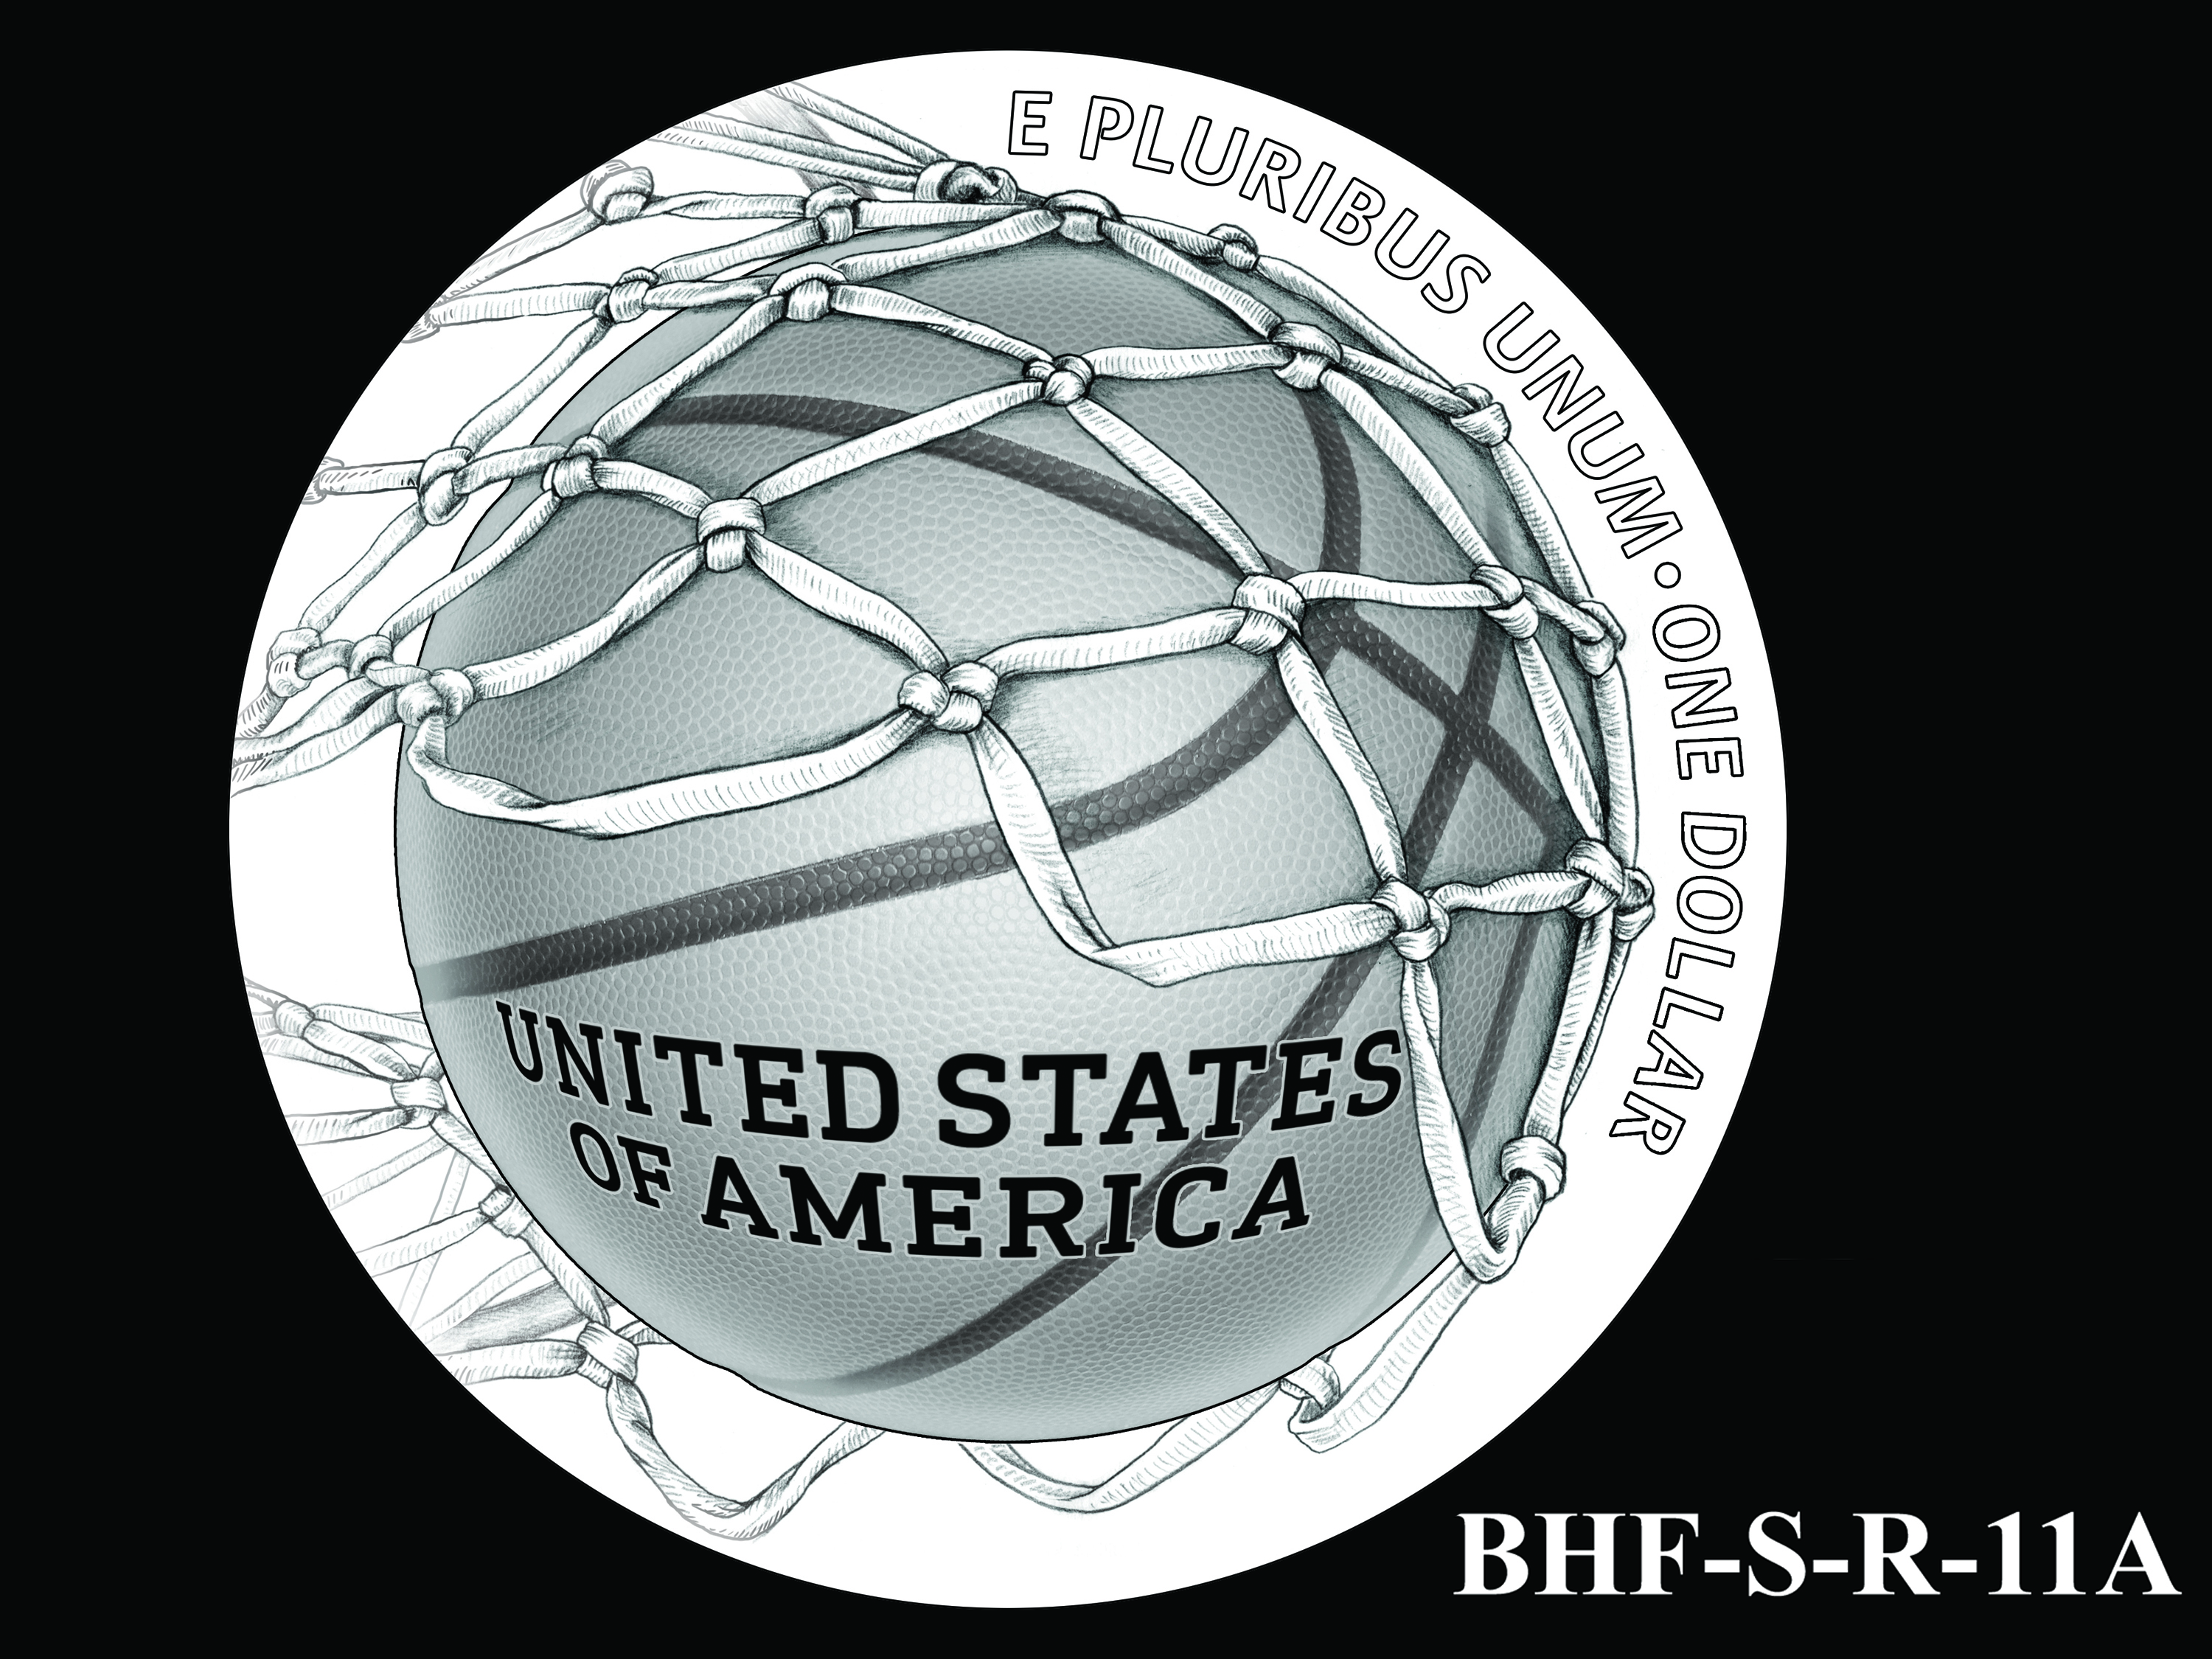 BHF-S-R-11A -- 2020 Basketball Hall of Fame Commemorative Coin Program - Silver Reverse